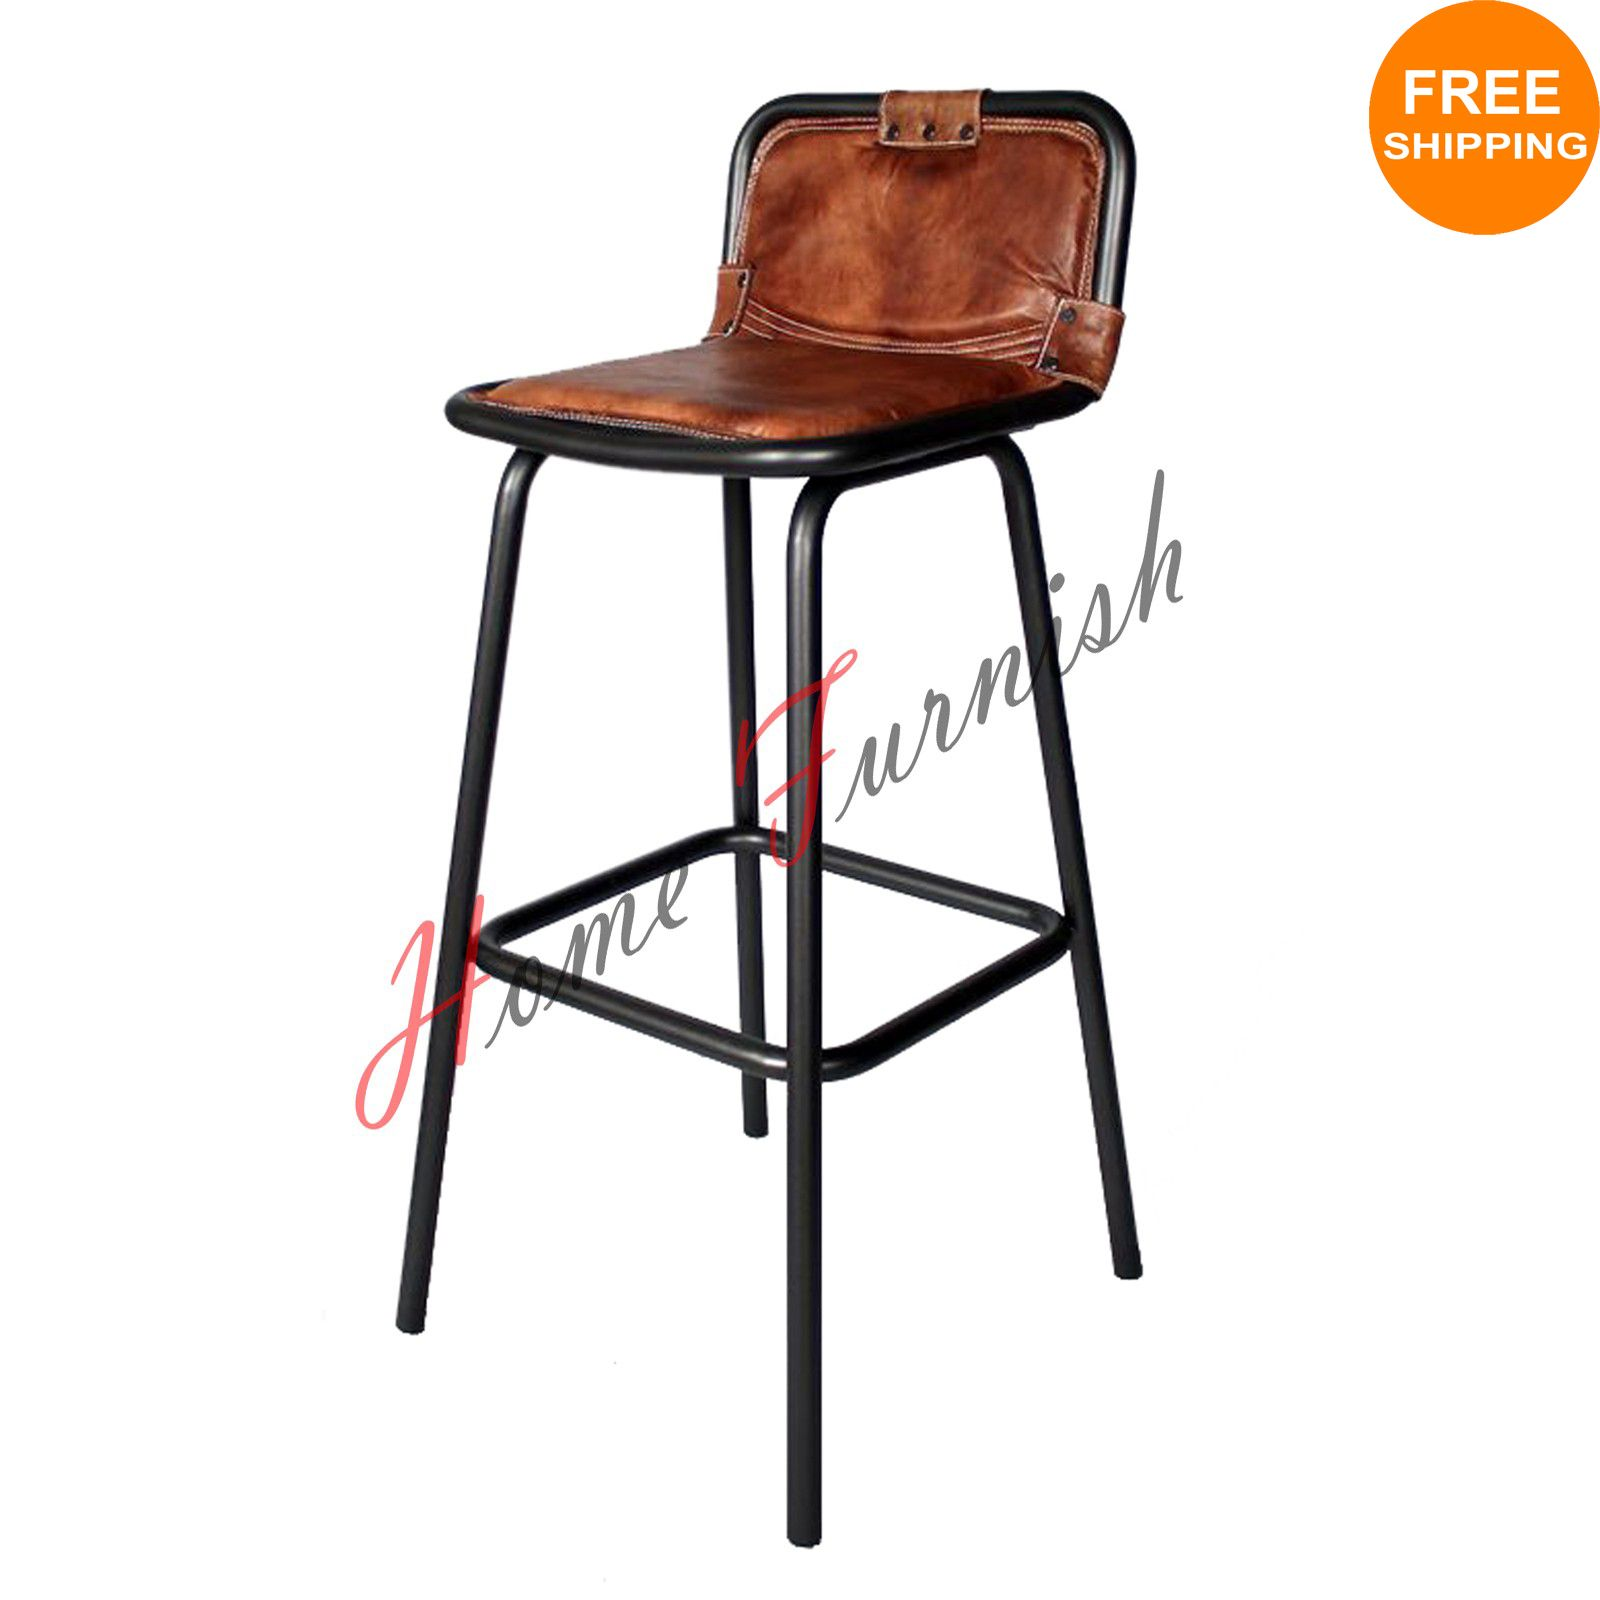 Industrial Bar Stool Leather Seat With Back Brown Leather Stool